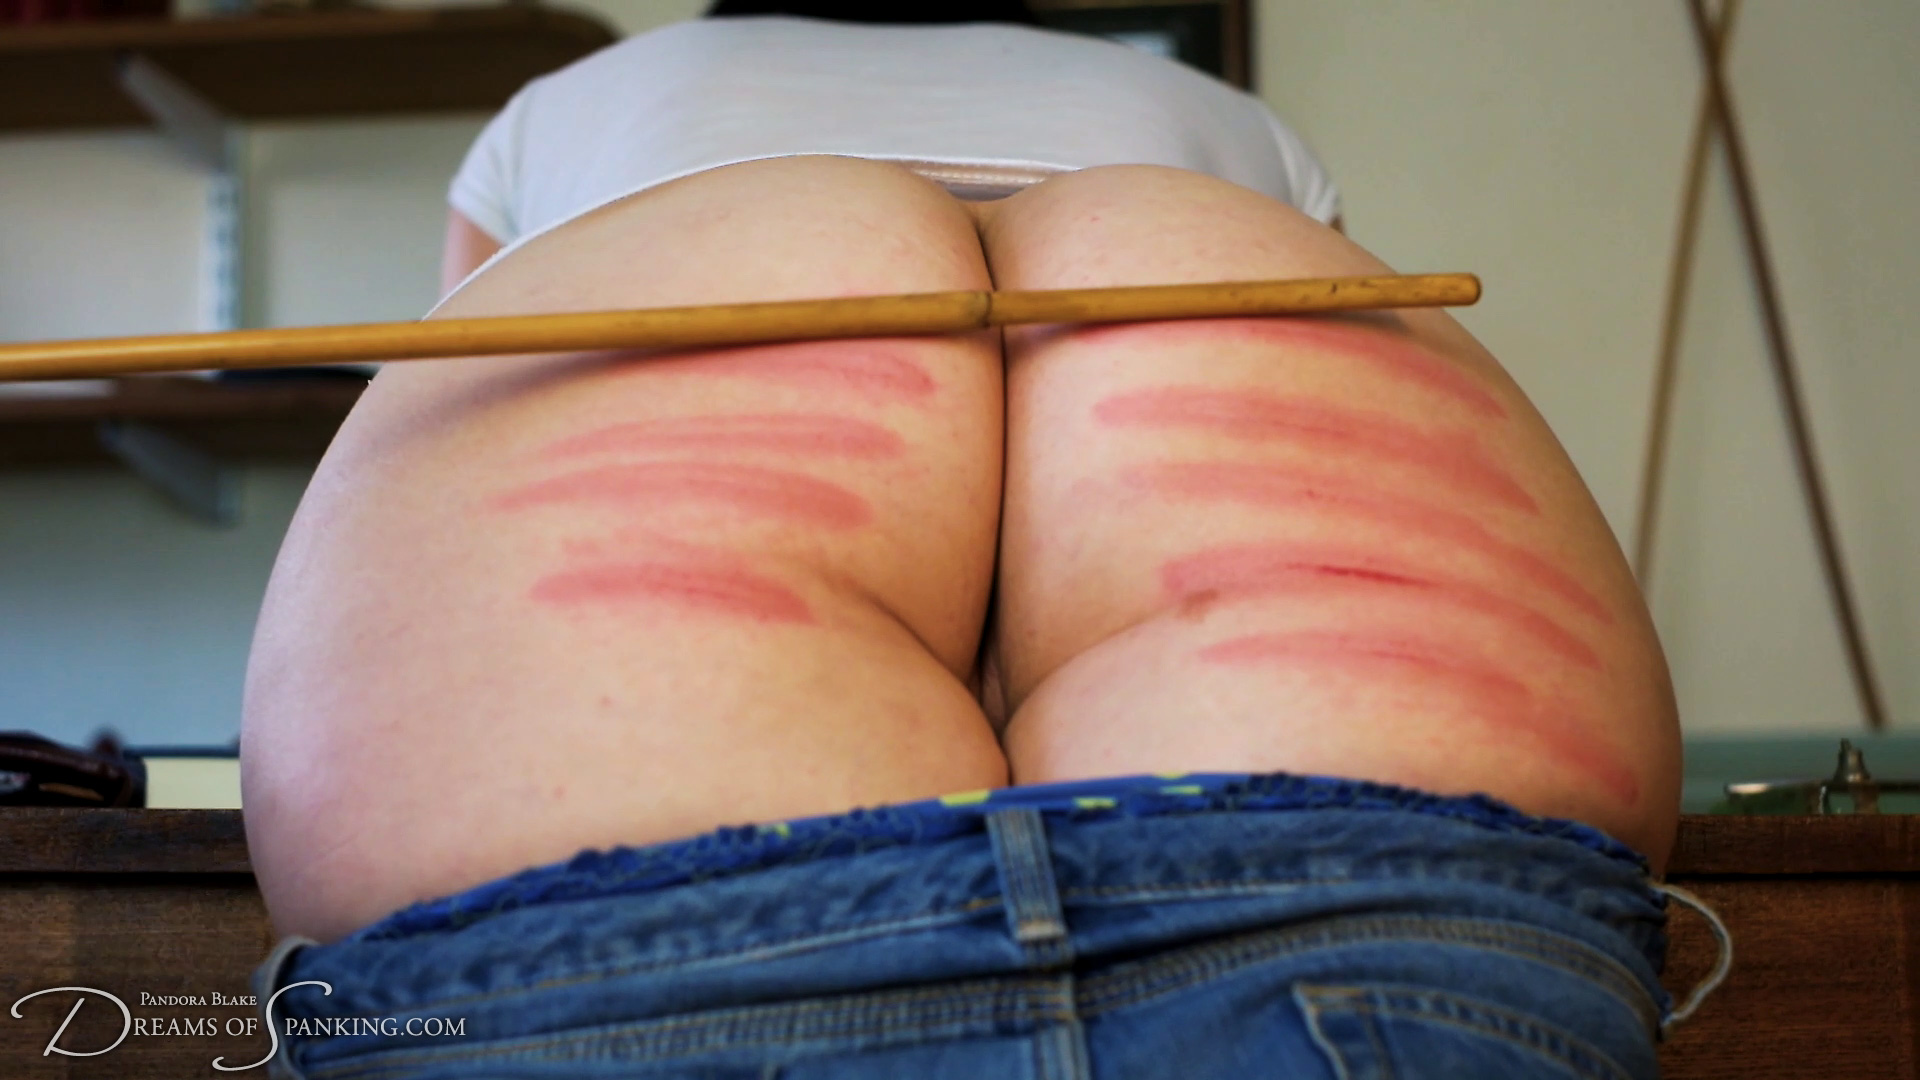 with you agree. spanking twins suck penis outdoor are mistaken. Write PM